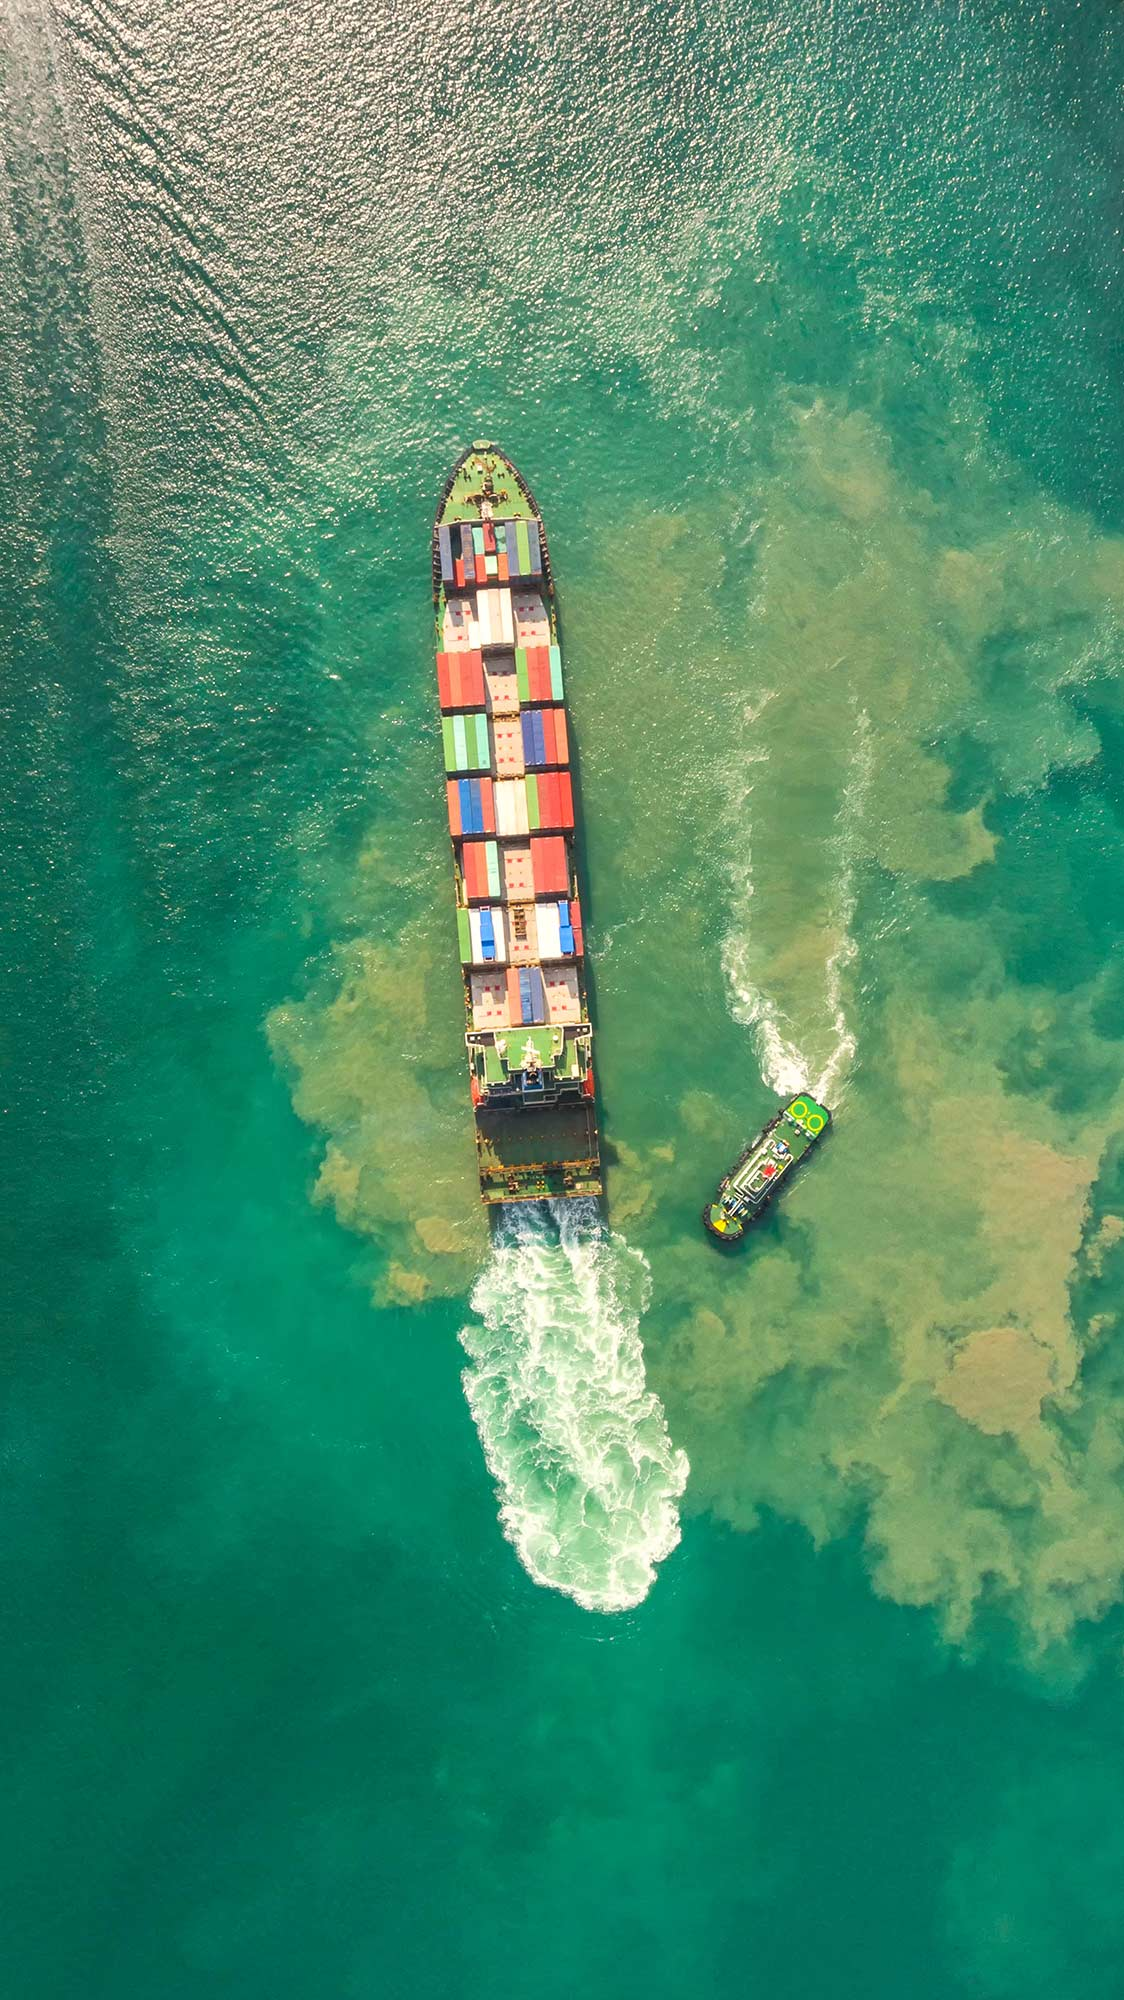 a big ship with containers and a small ship on the green color river